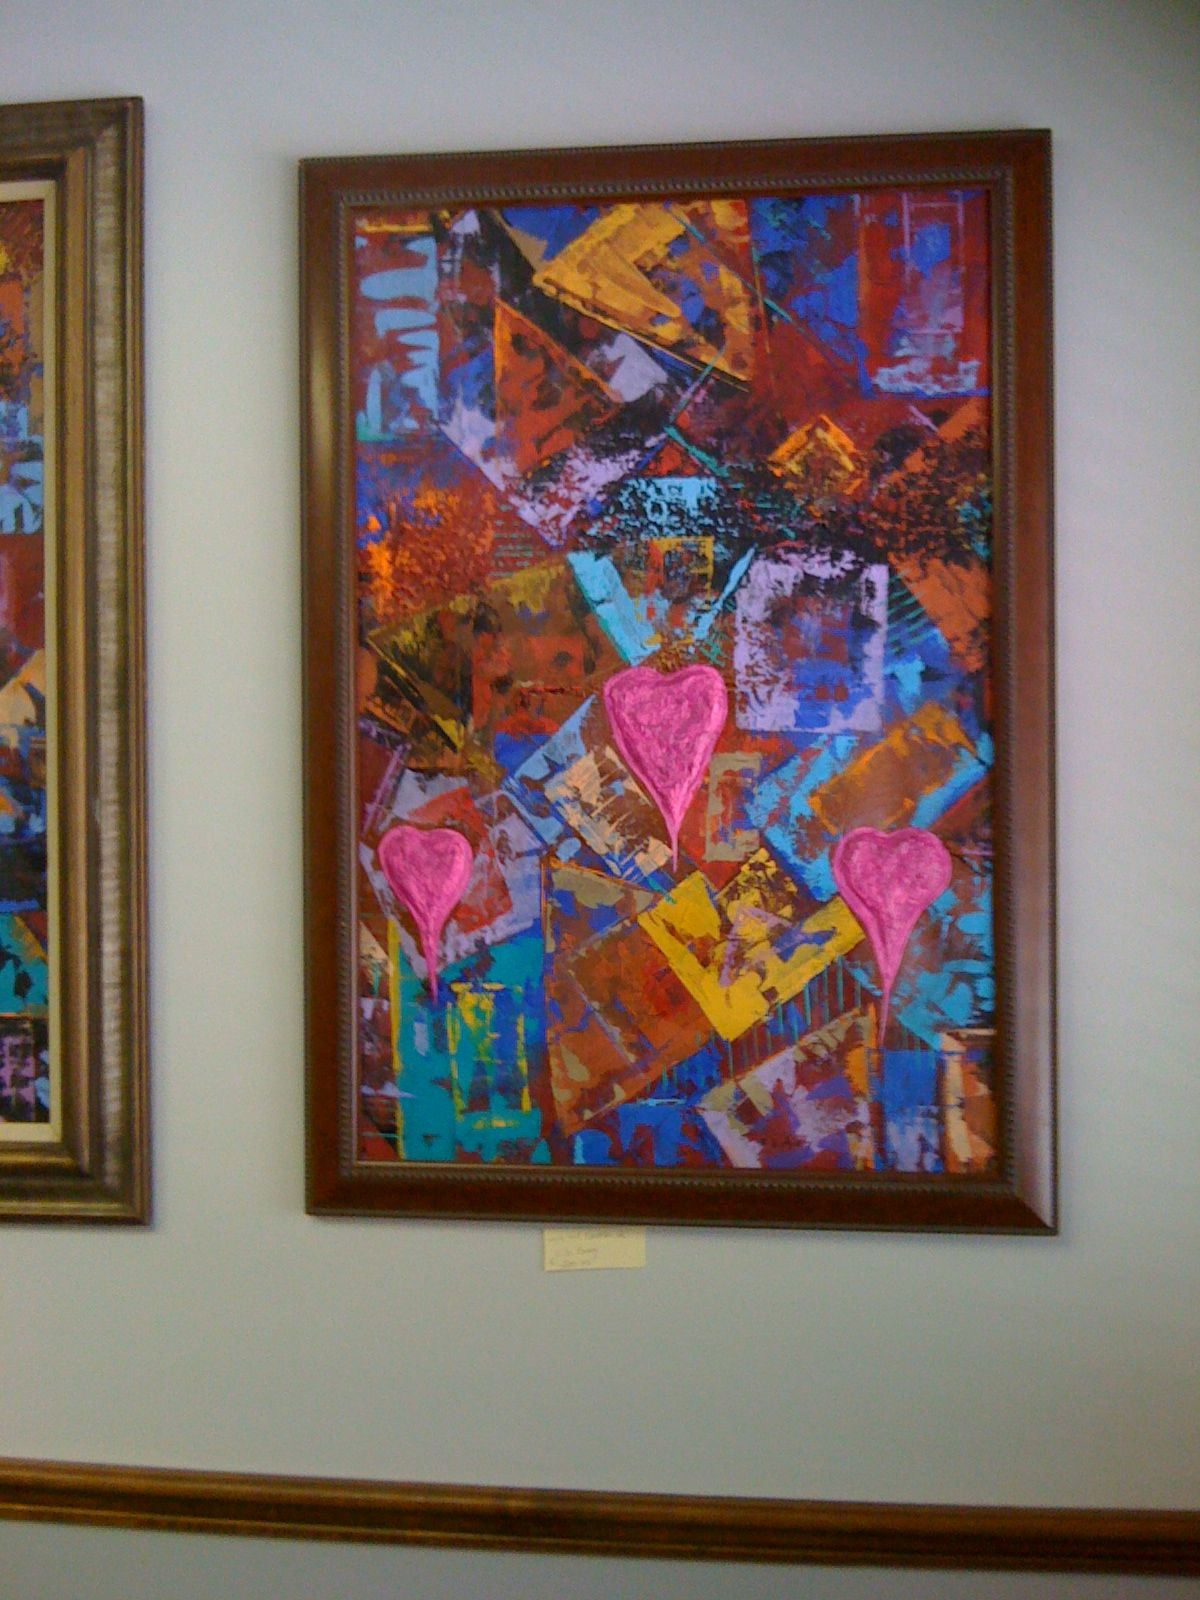 Logic and Emotion 3, at my recent show.